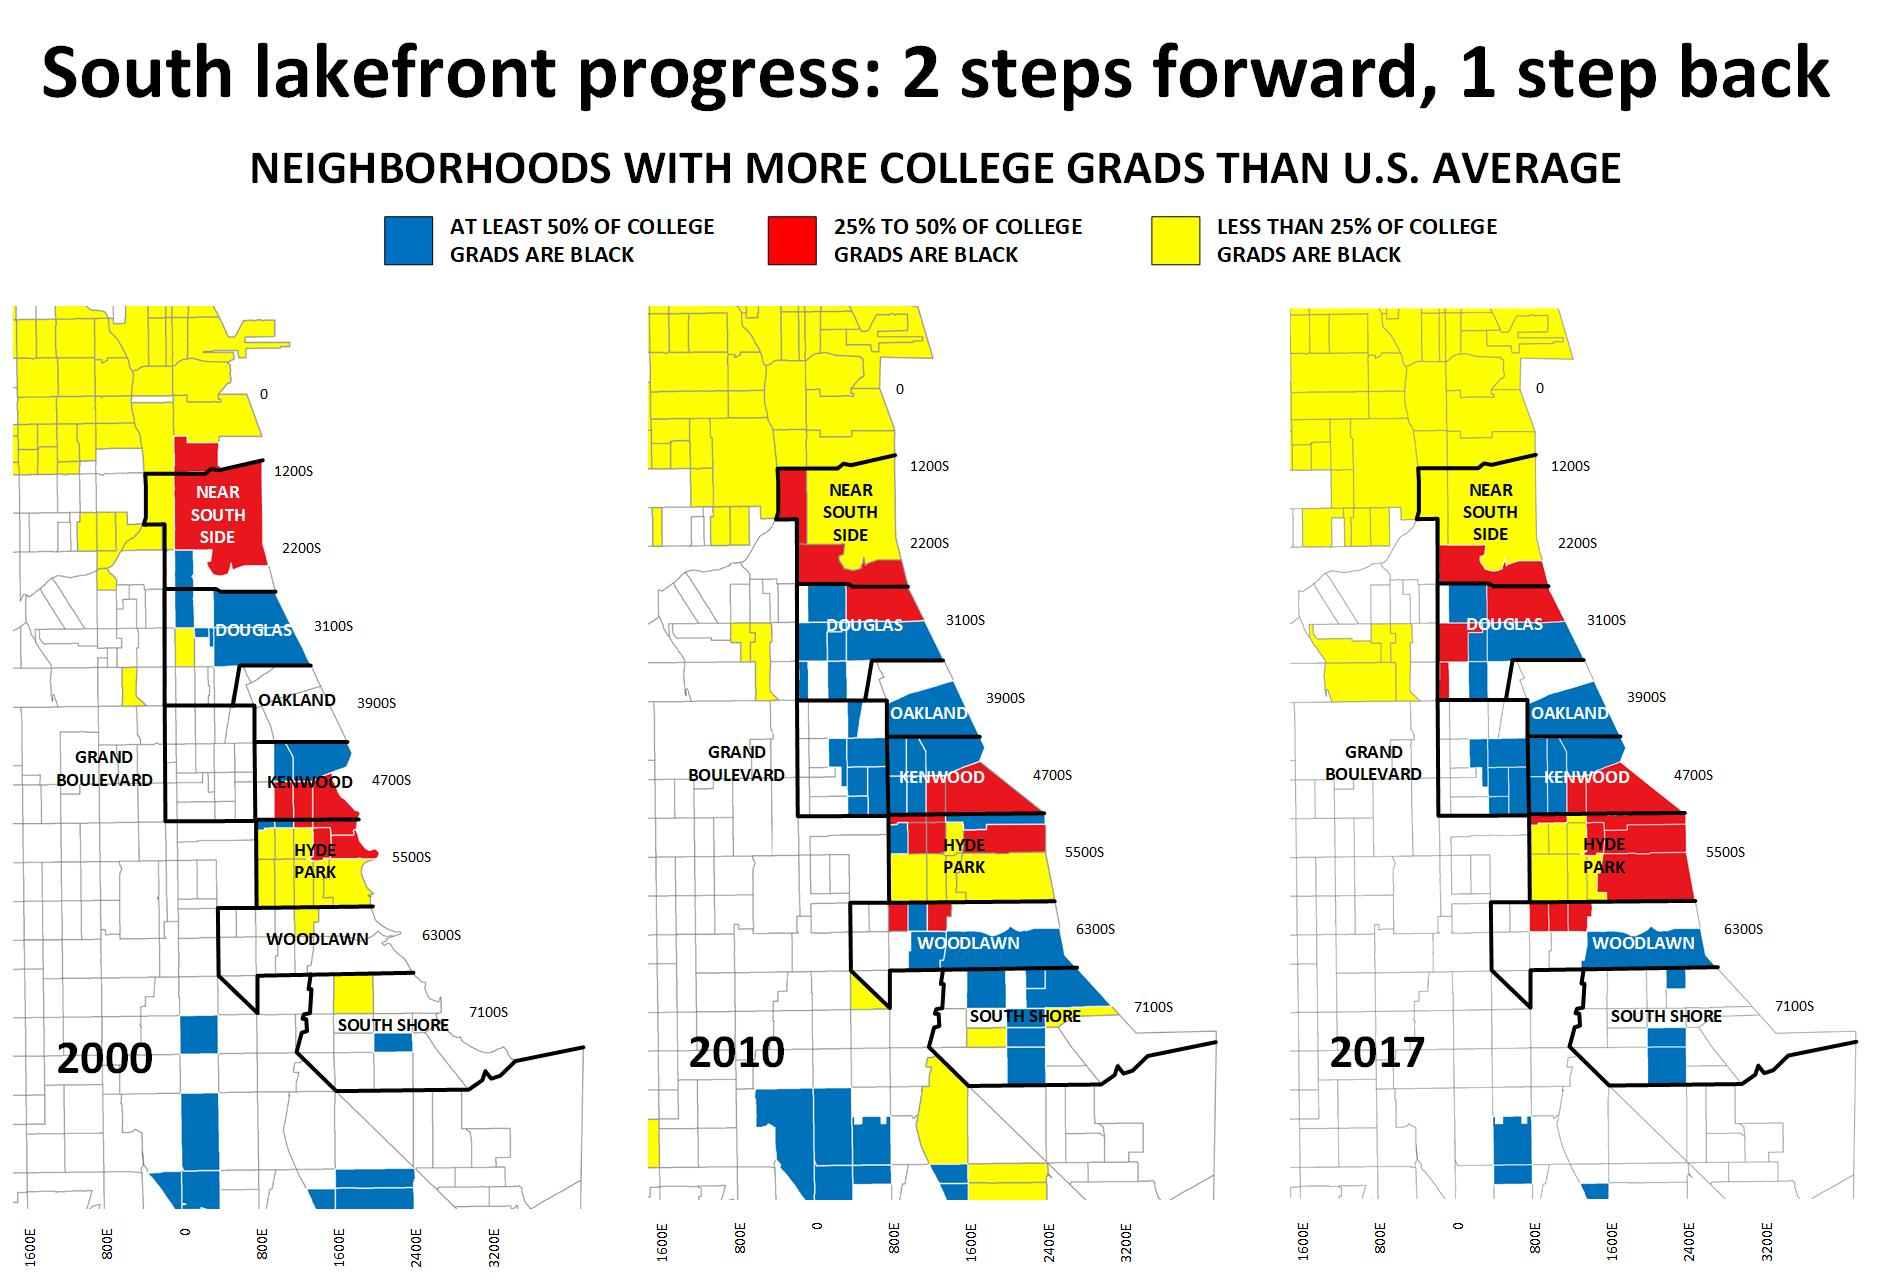 Redevelopment of the south lakefront has gone through two phases. The maps here show neighborhoods where the percentage of residents with a bachelor's degree or better exceeds the U.S. average (32% as of 2017) — a sign of community revival.